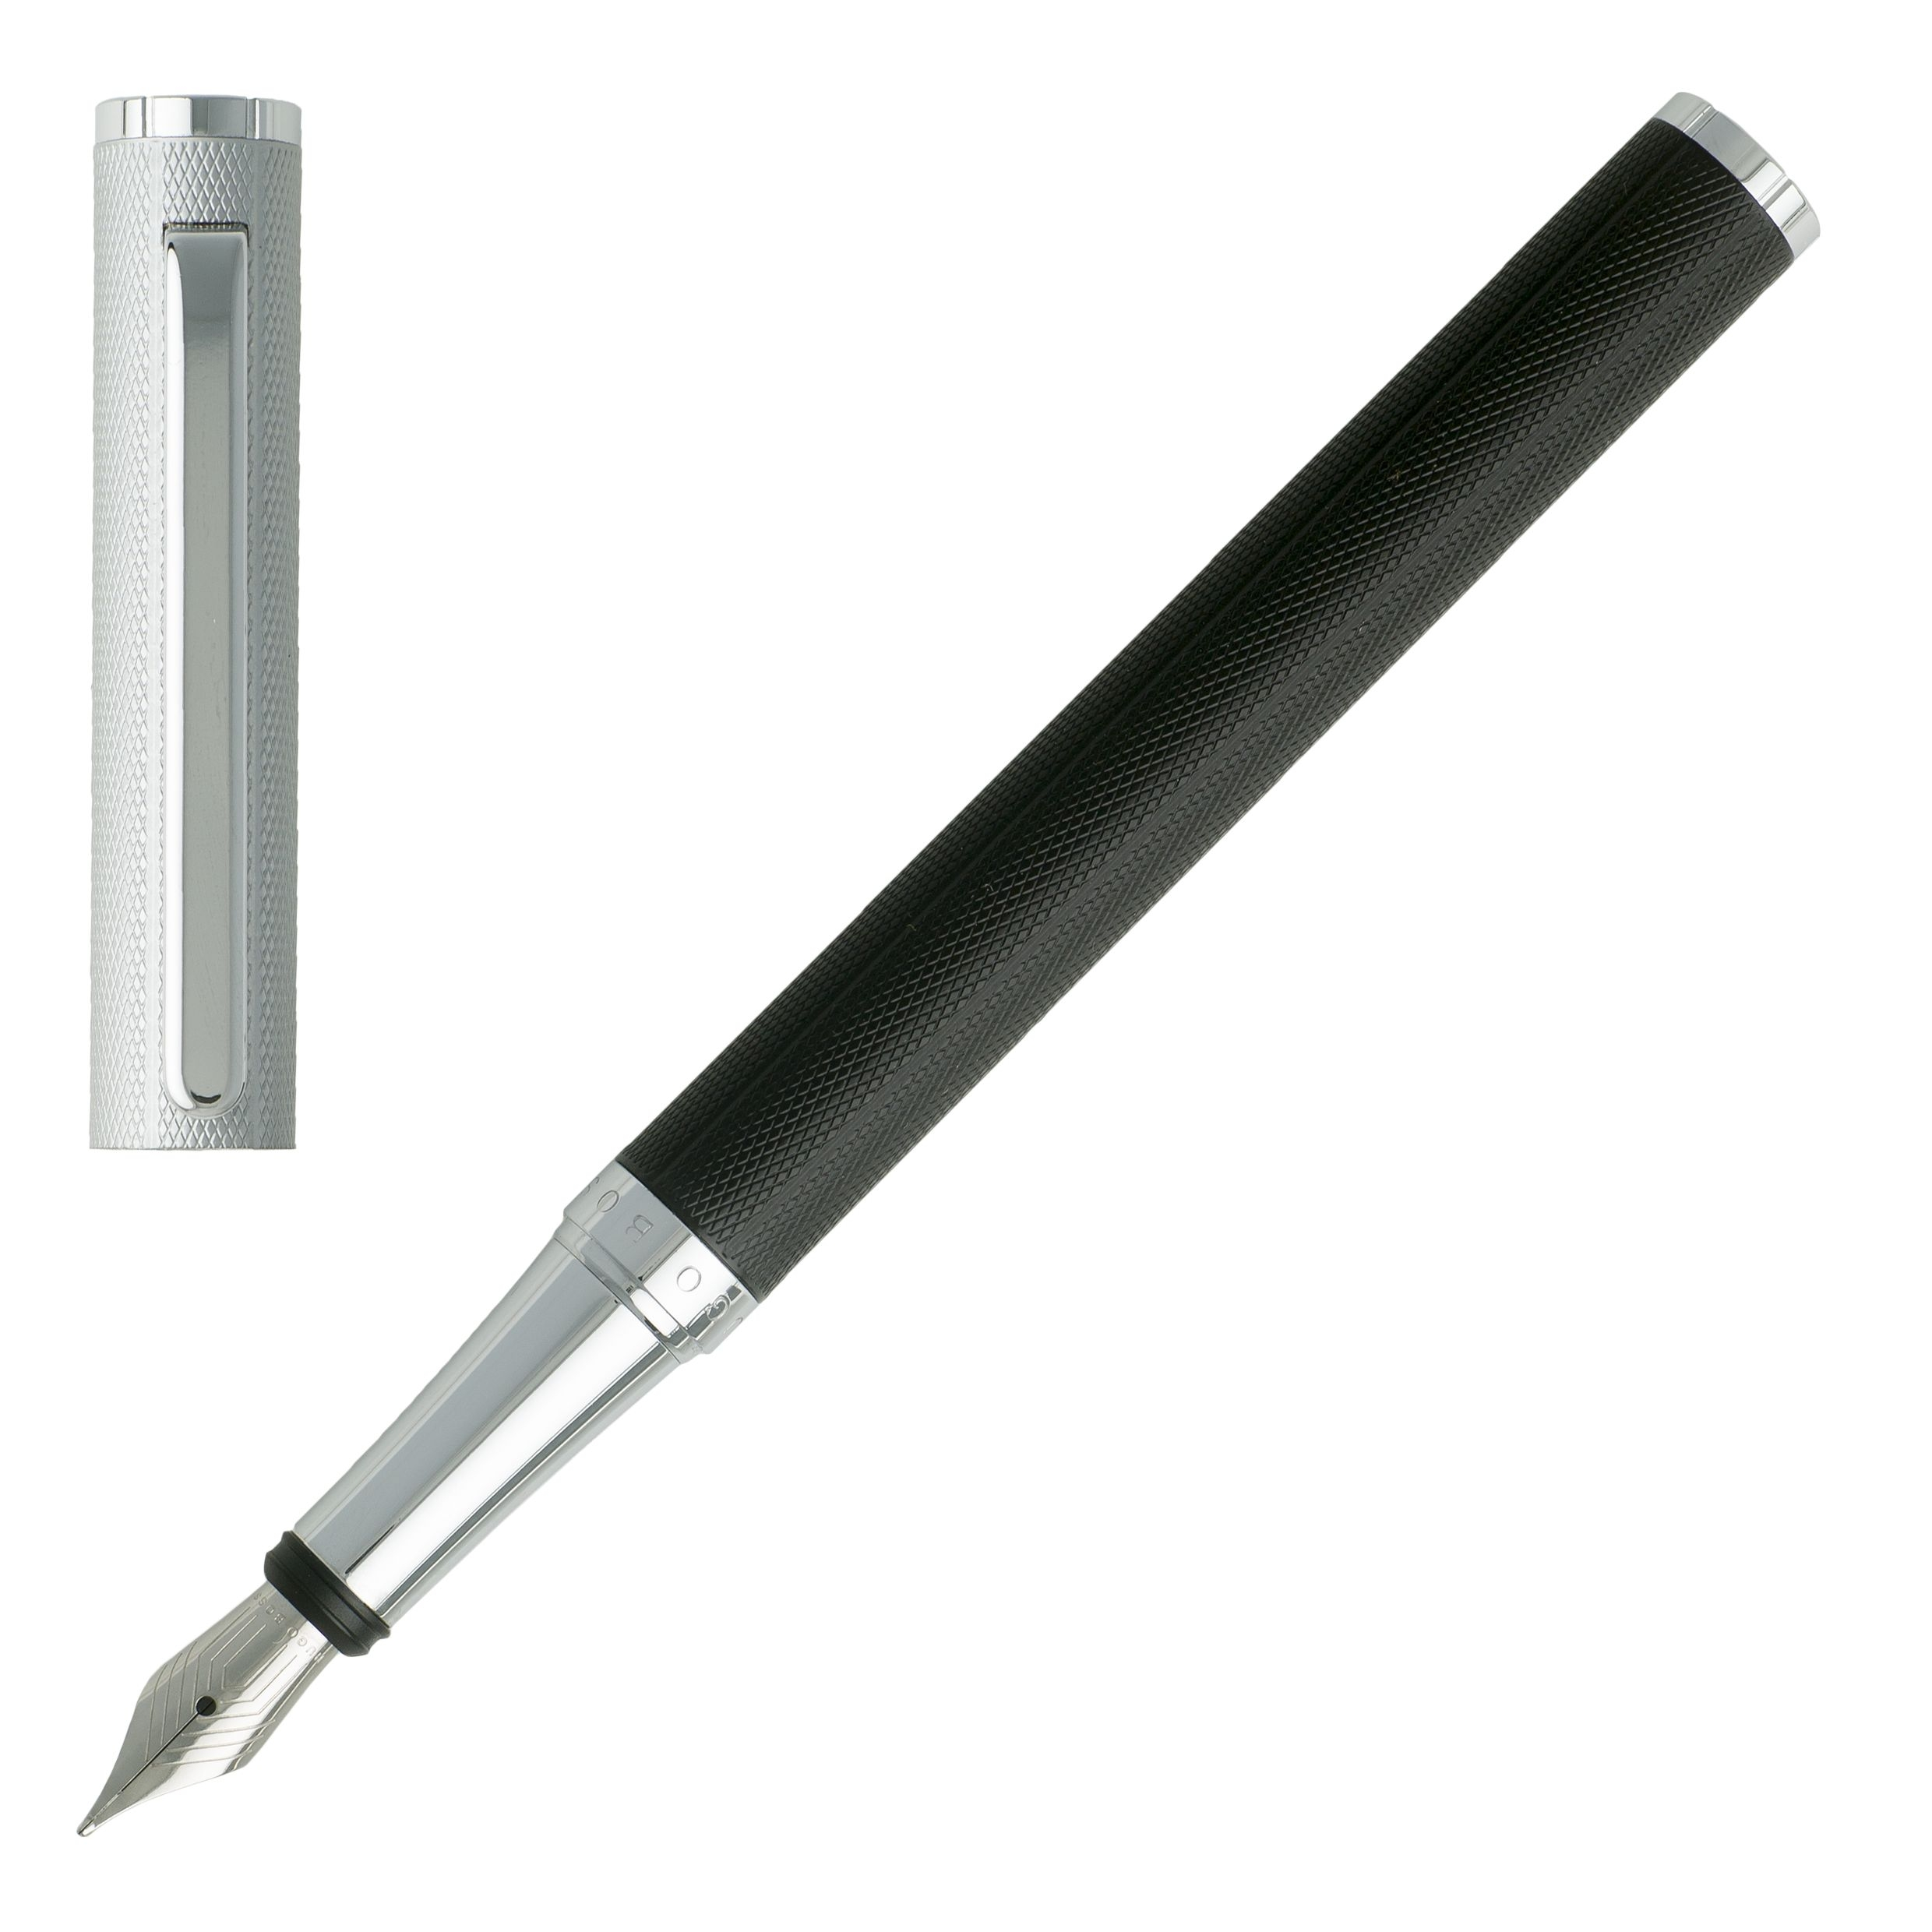 Πένα Hugo Boss Stainless Steel Fountain Pen HSV7642